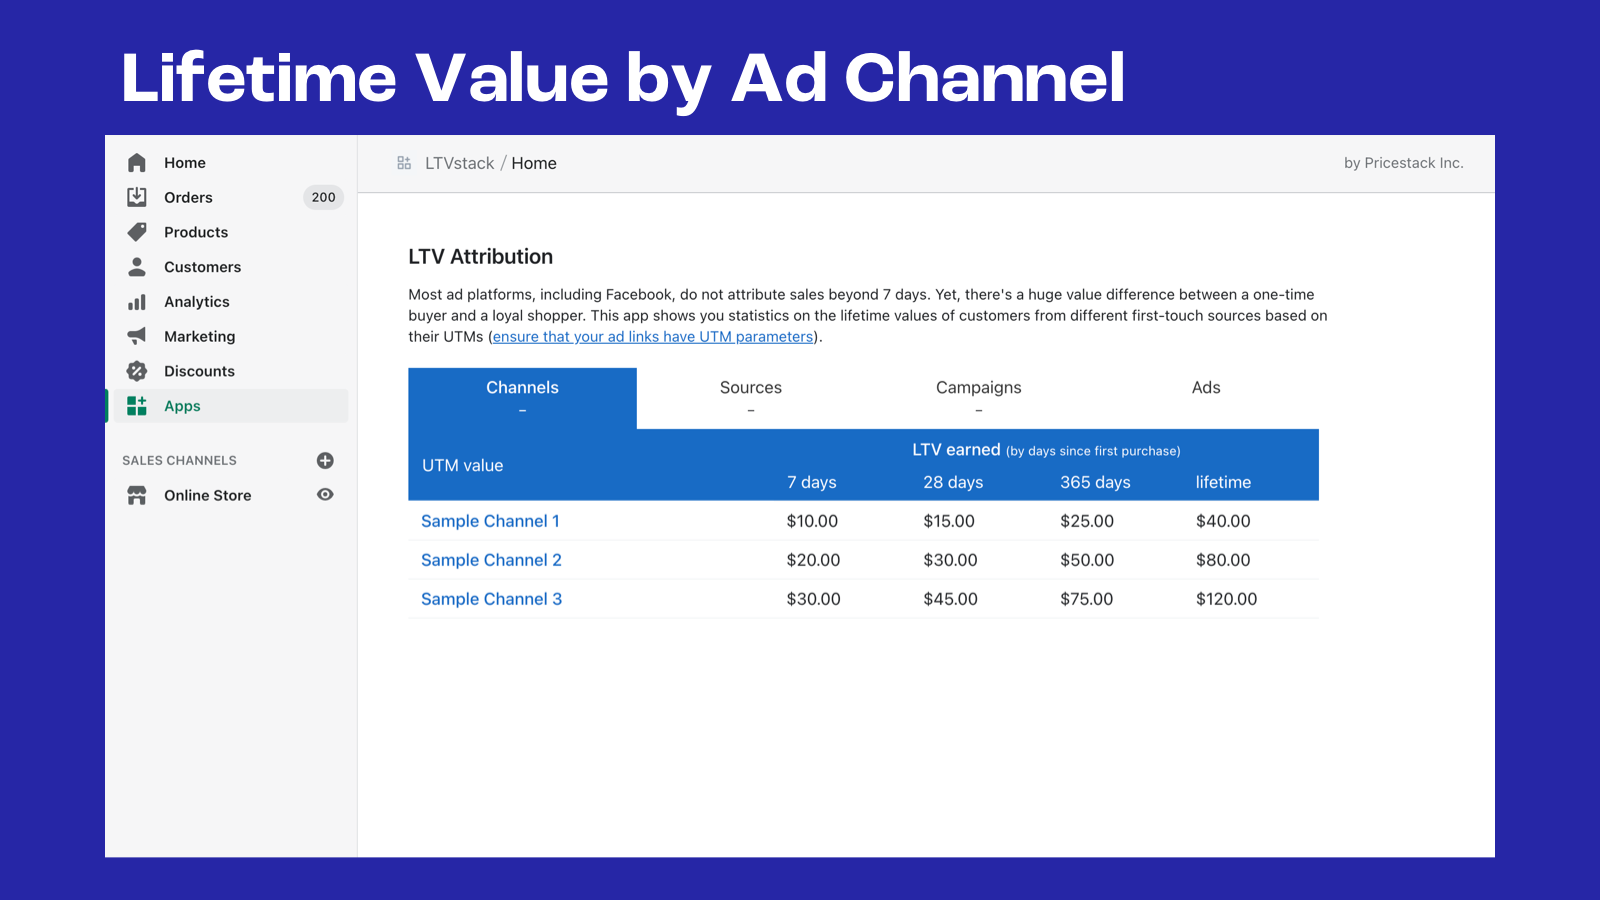 Explore lifetime value by ad channel